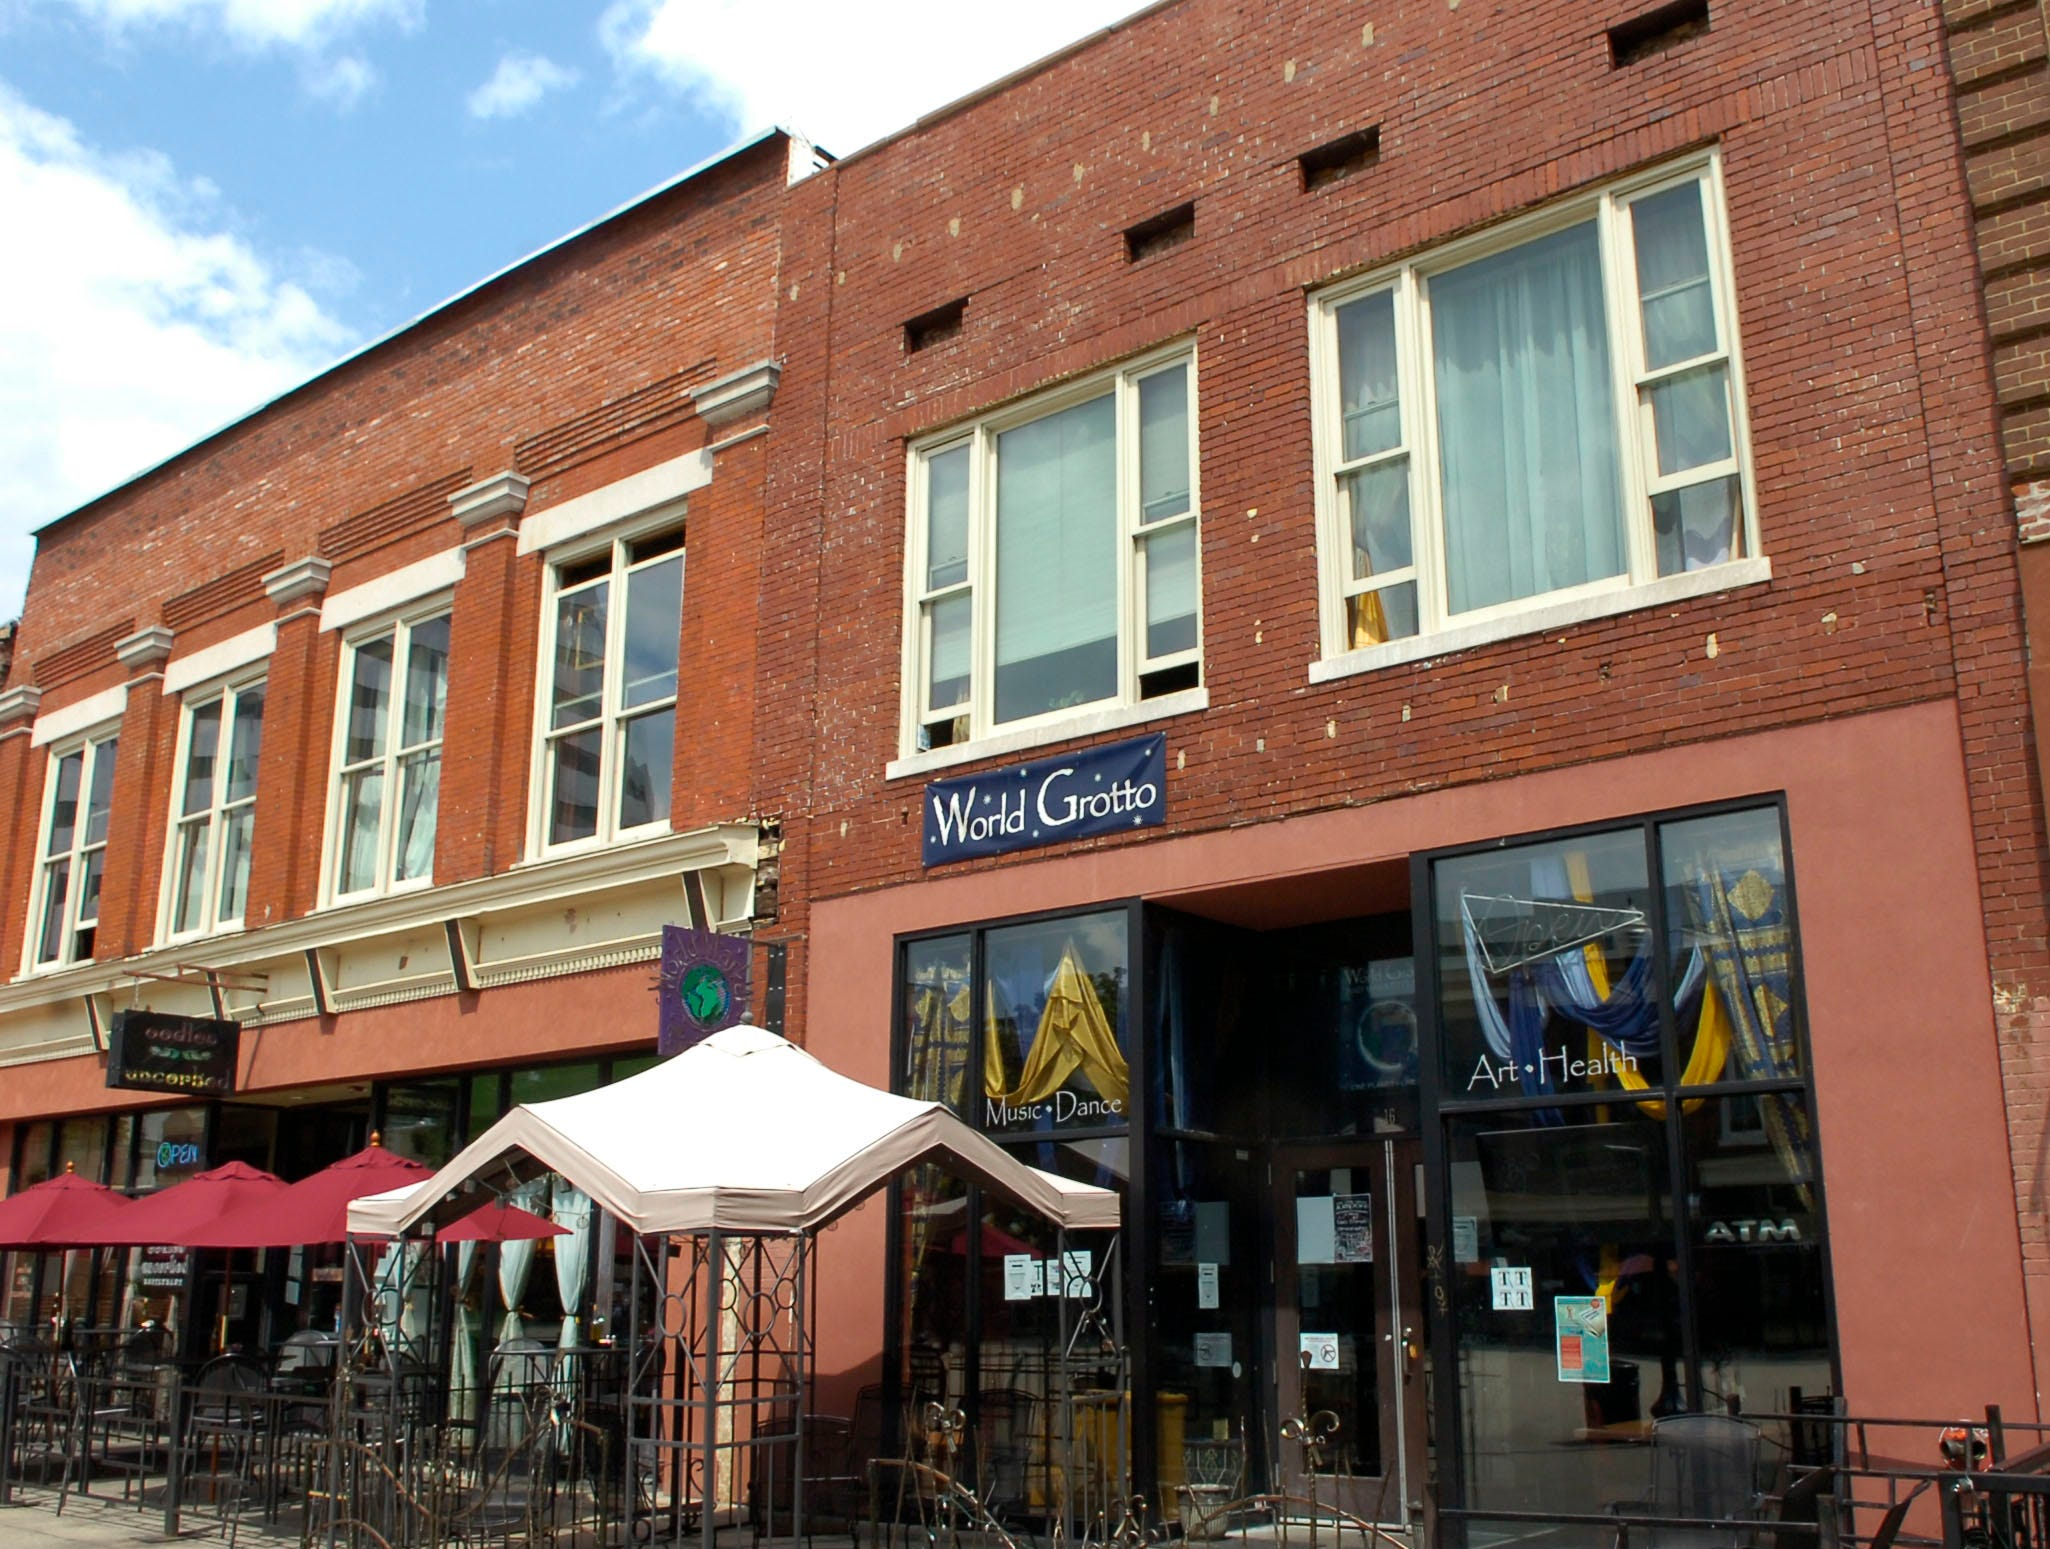 The World Grotto, located in Market Square, downtown Knoxville on Tuesday September 1, 2009. The business, which has been open for five years, will be closing on Saturday after a final evening of entertainment.